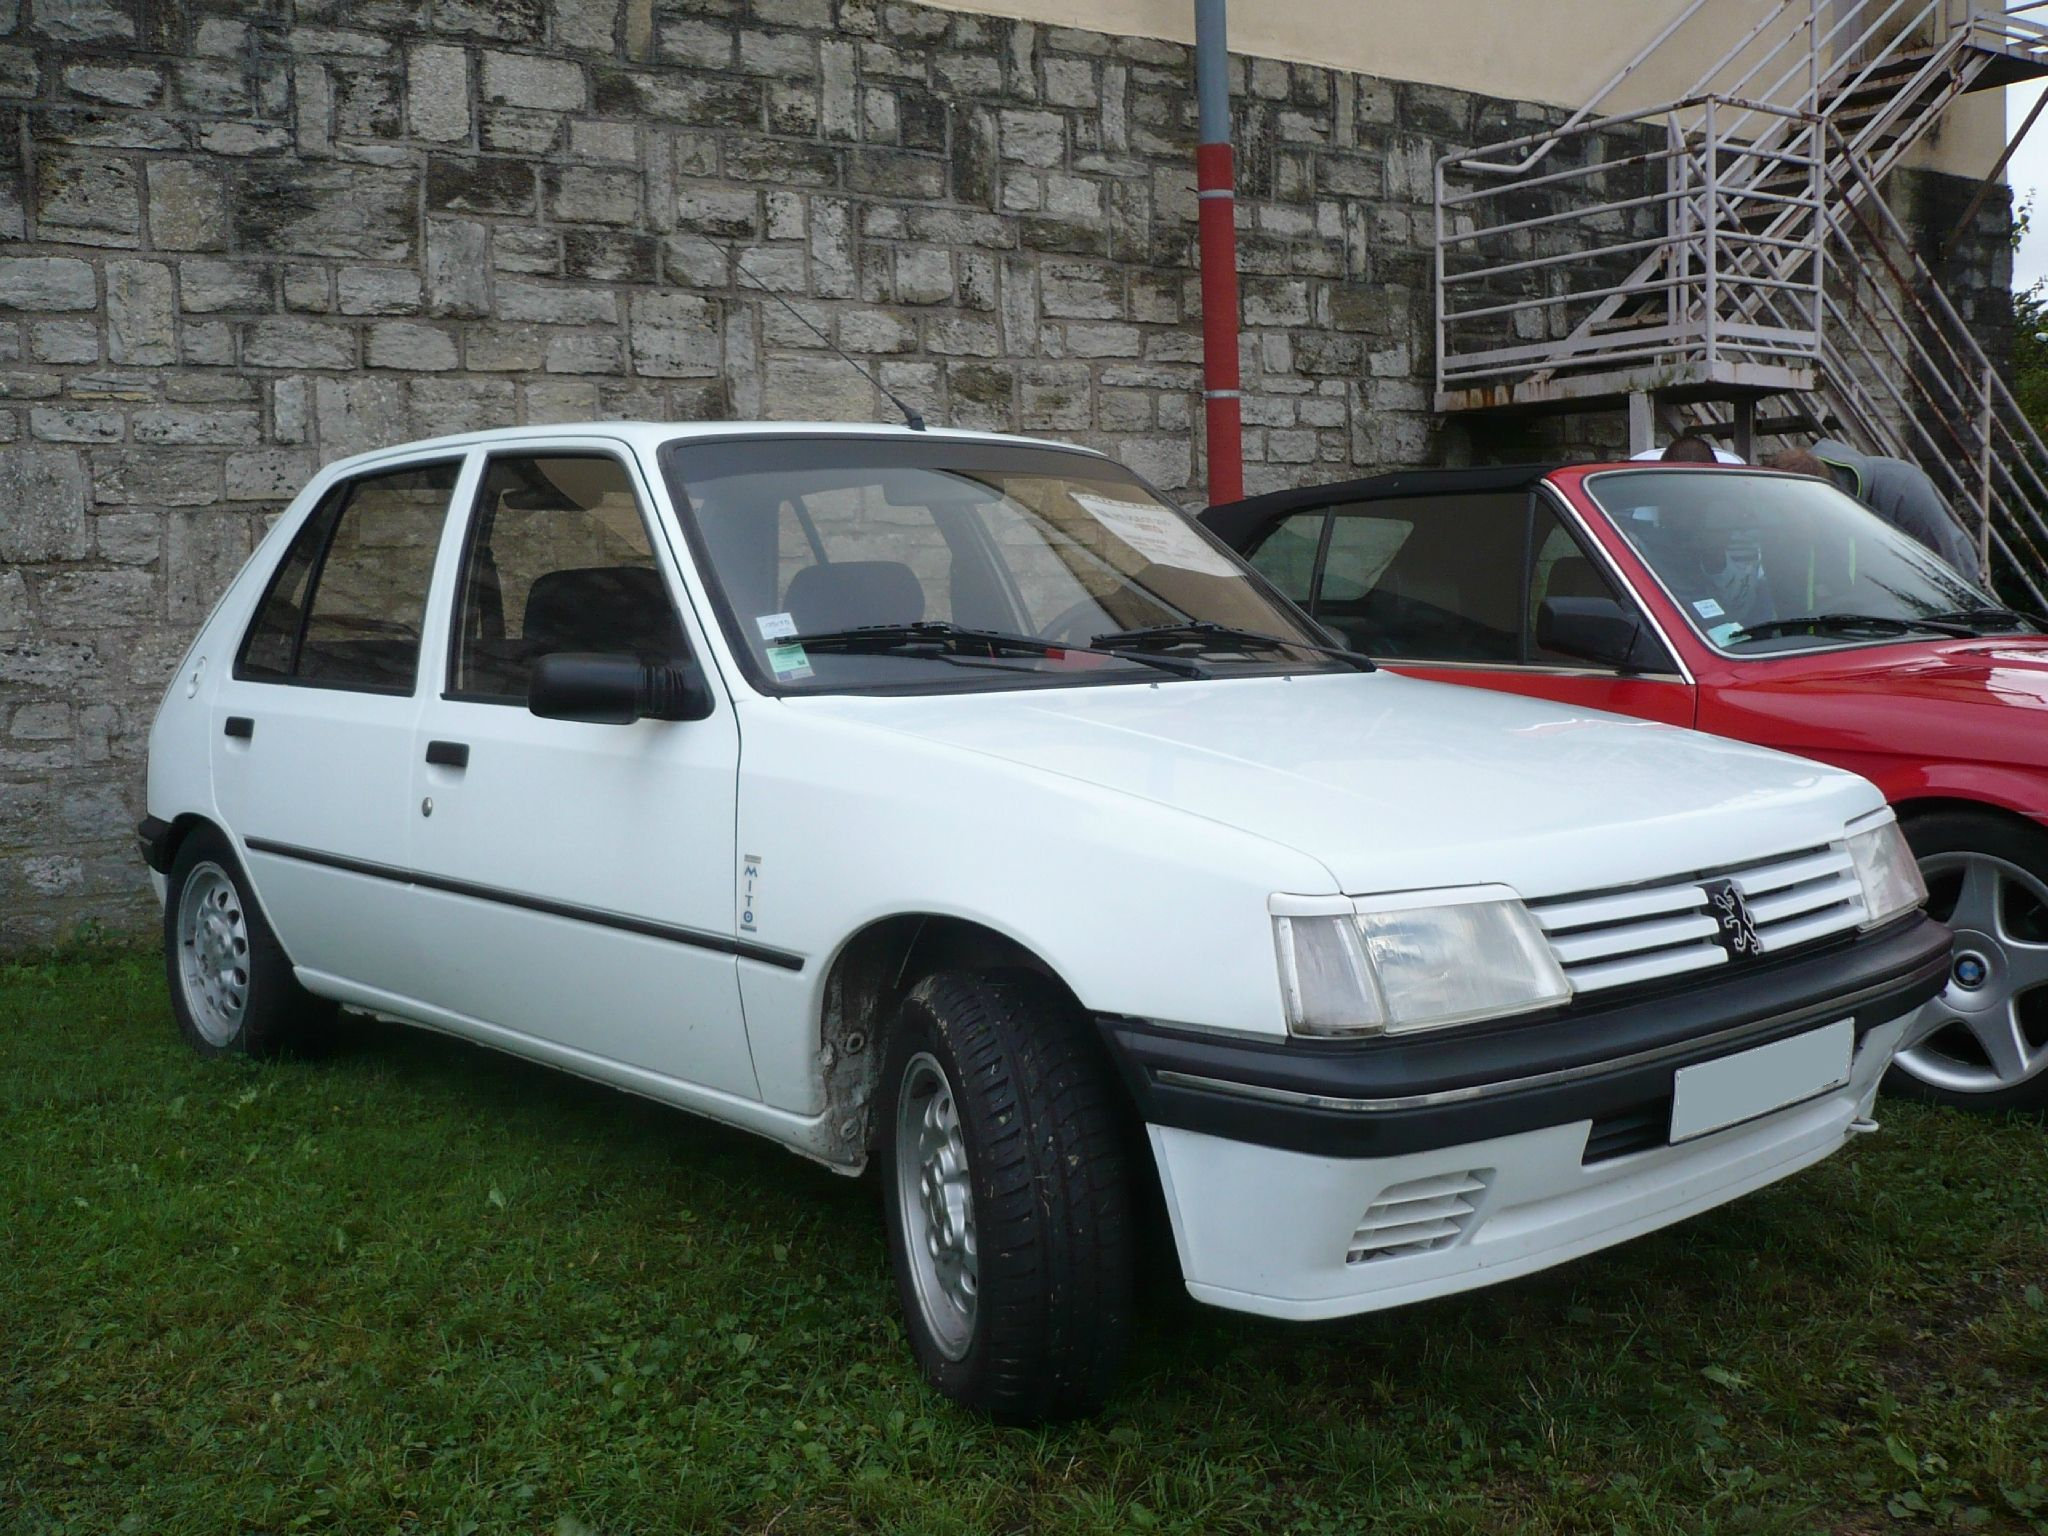 peugeot 205 mito 1994 pug5dr pinterest peugeot and cars rh pinterest com Peugeot 305 Peugeot 306